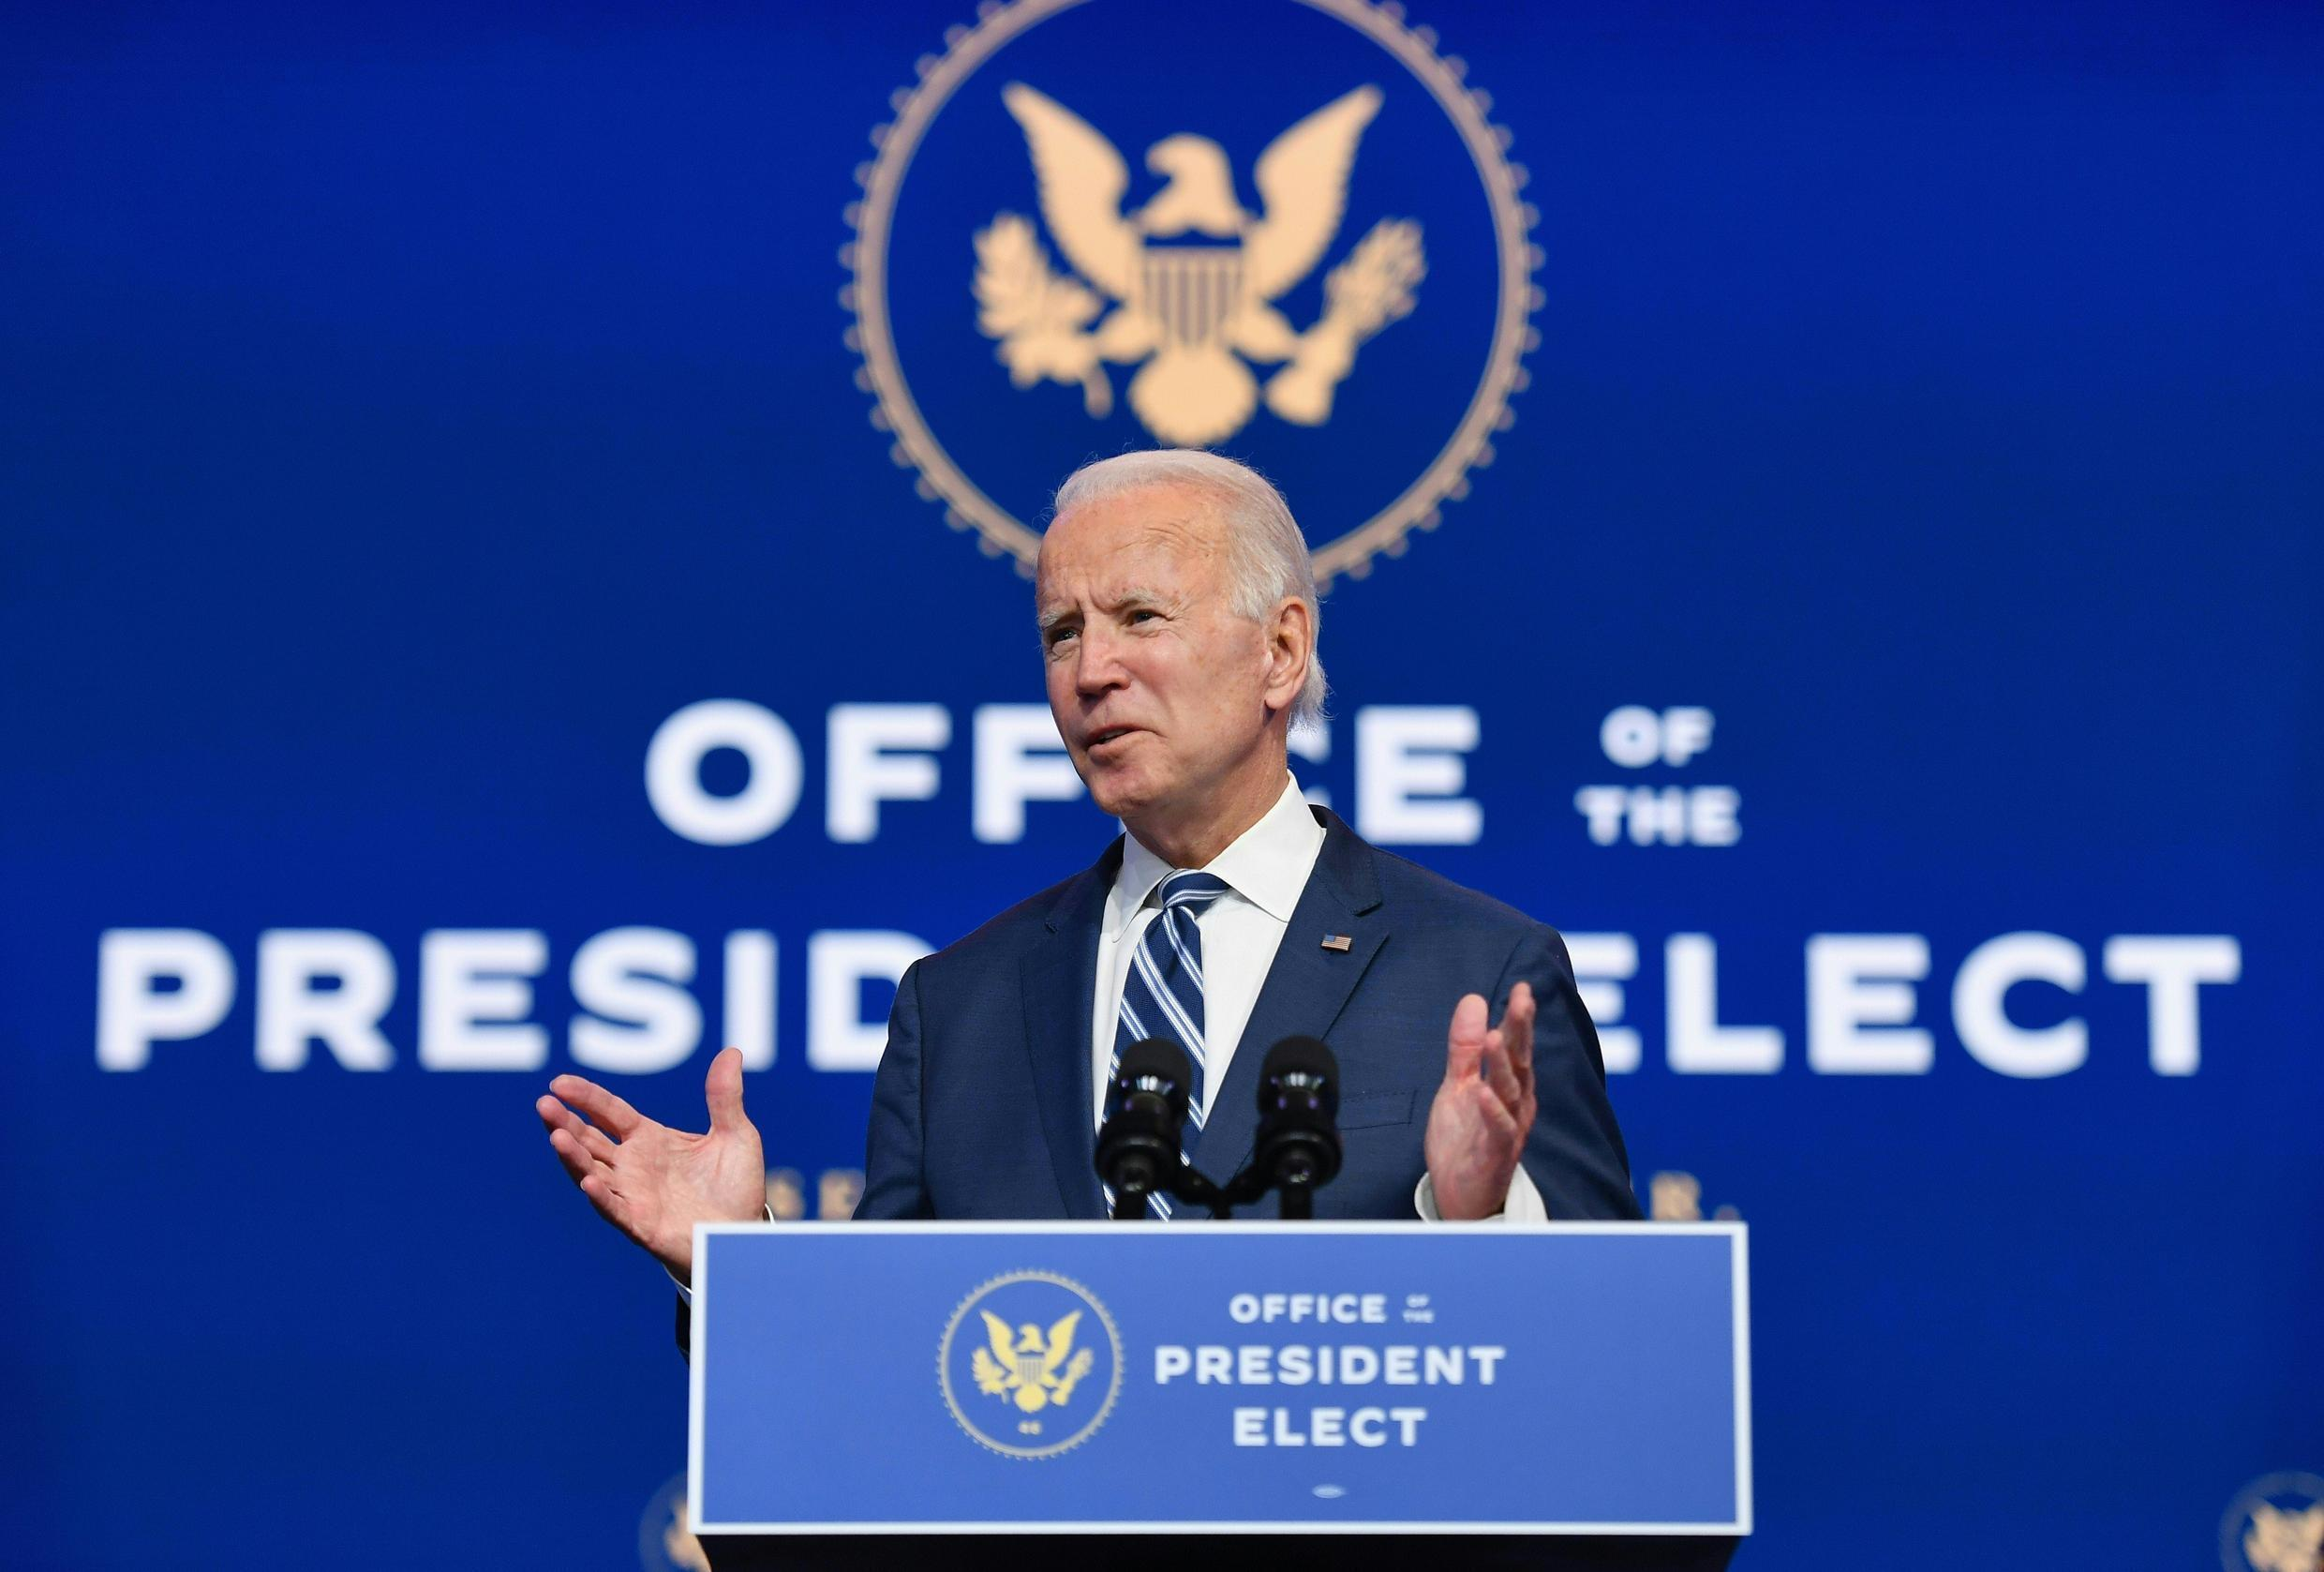 Joe Biden's battle against the coronavirus has been laid bare by figures showing a record of more than 200,000 Americans were infected in 24 hours